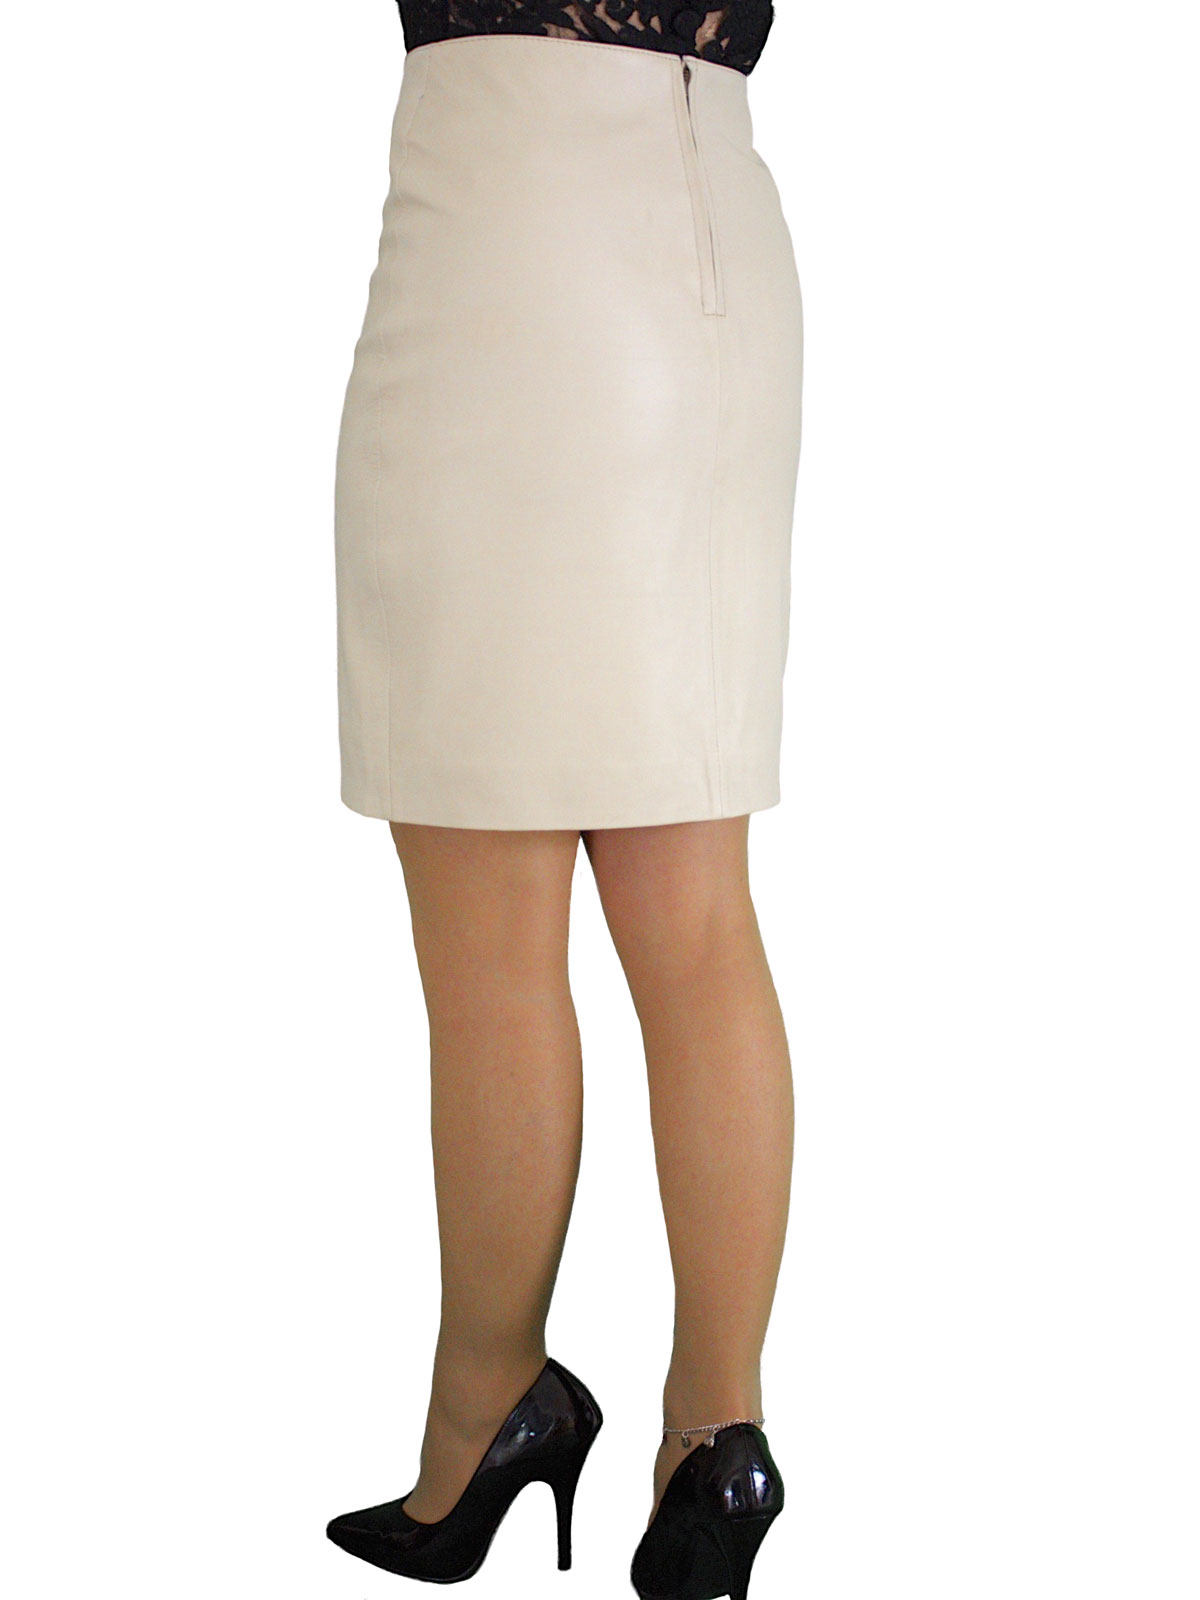 Luxury Leather Pencil Skirt, above knee 19in length - Tout Ensemble